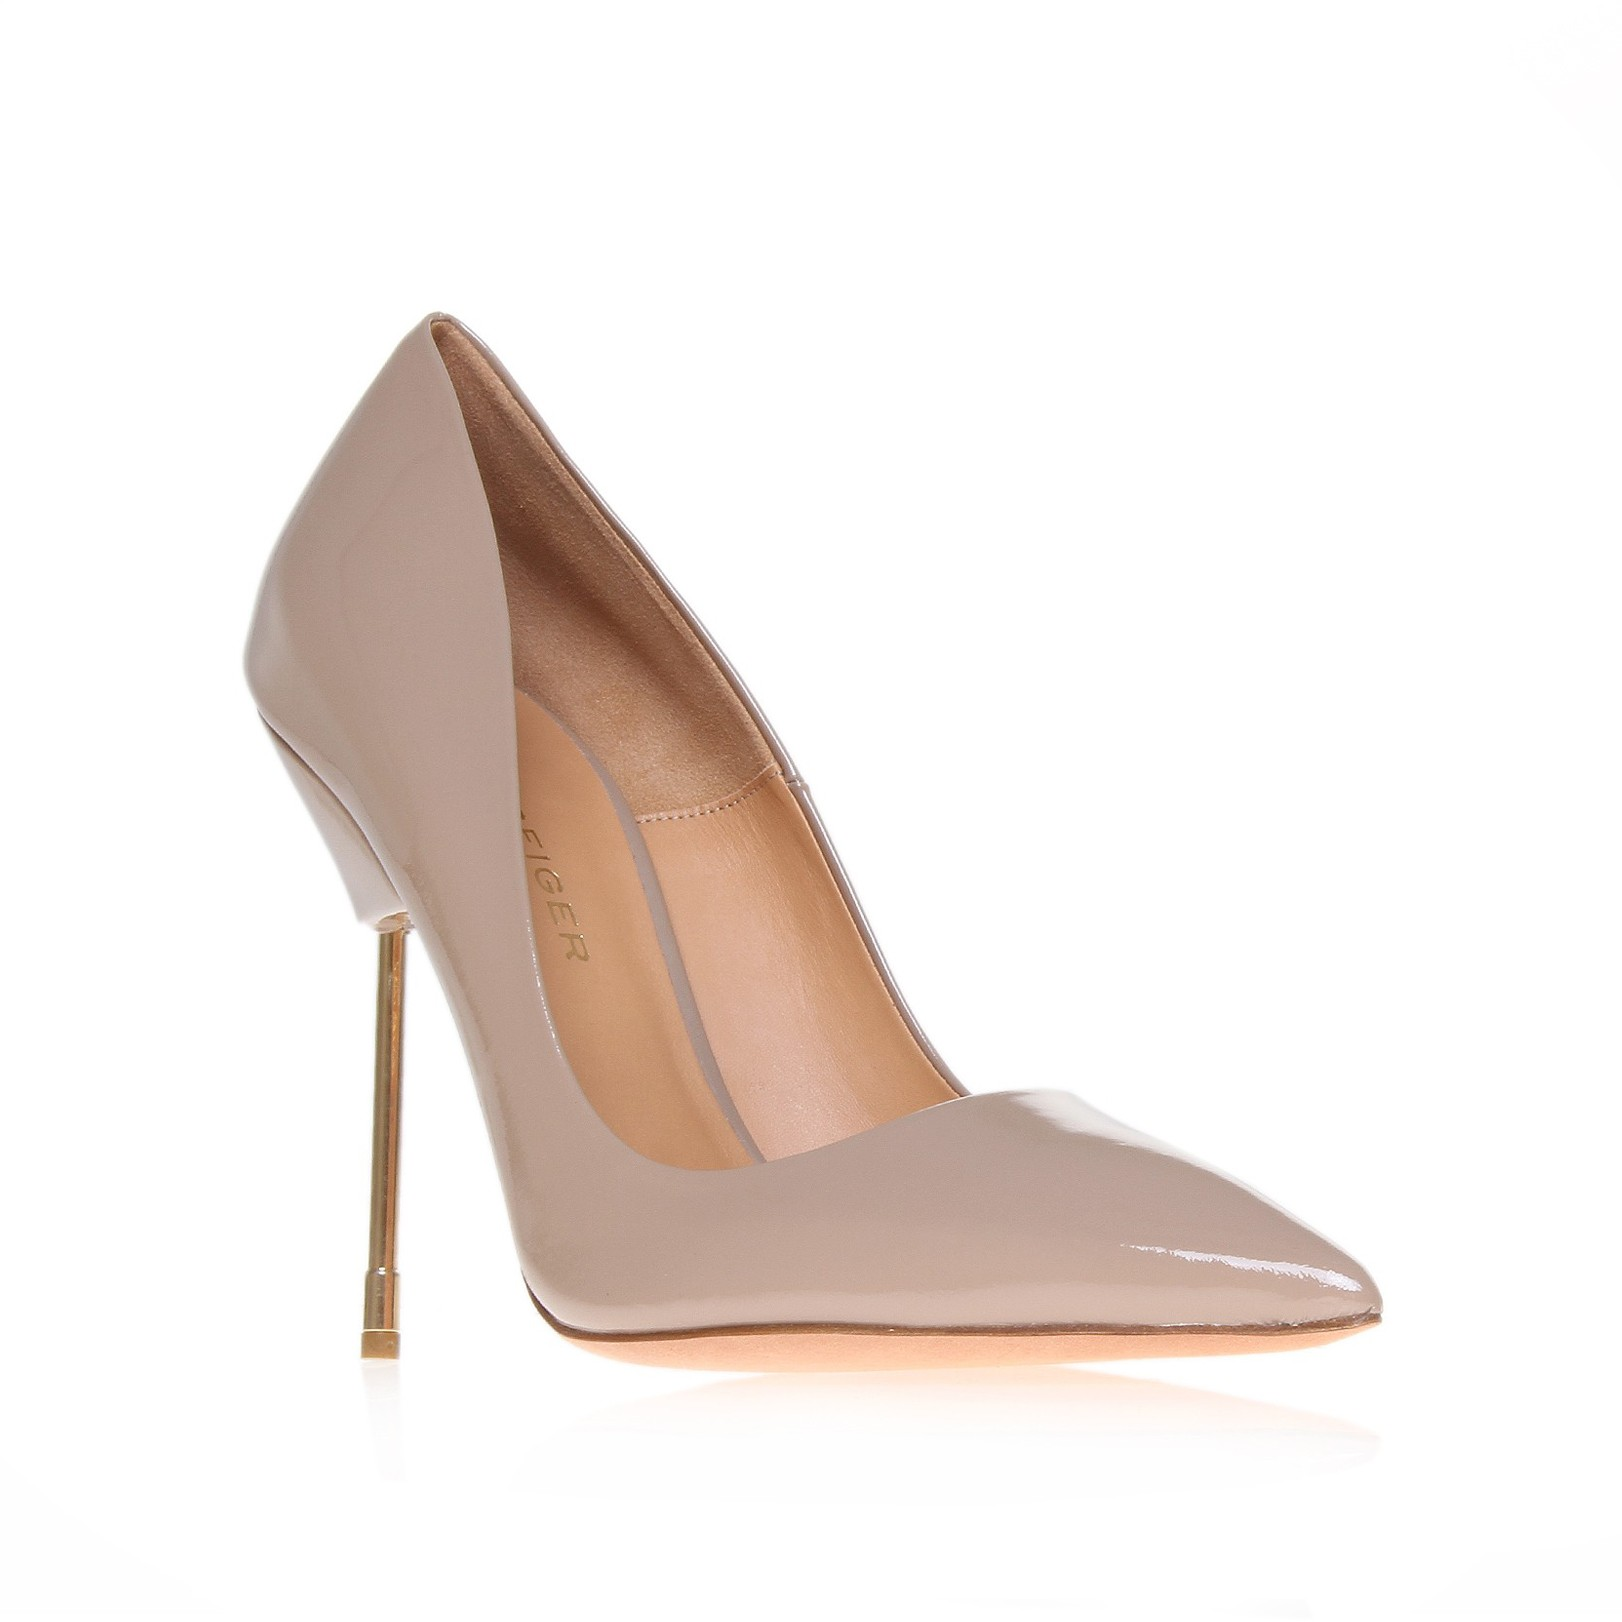 Kurt Geiger |  BRITTON Nude leather pointed stiletto by Kurt Geiger London